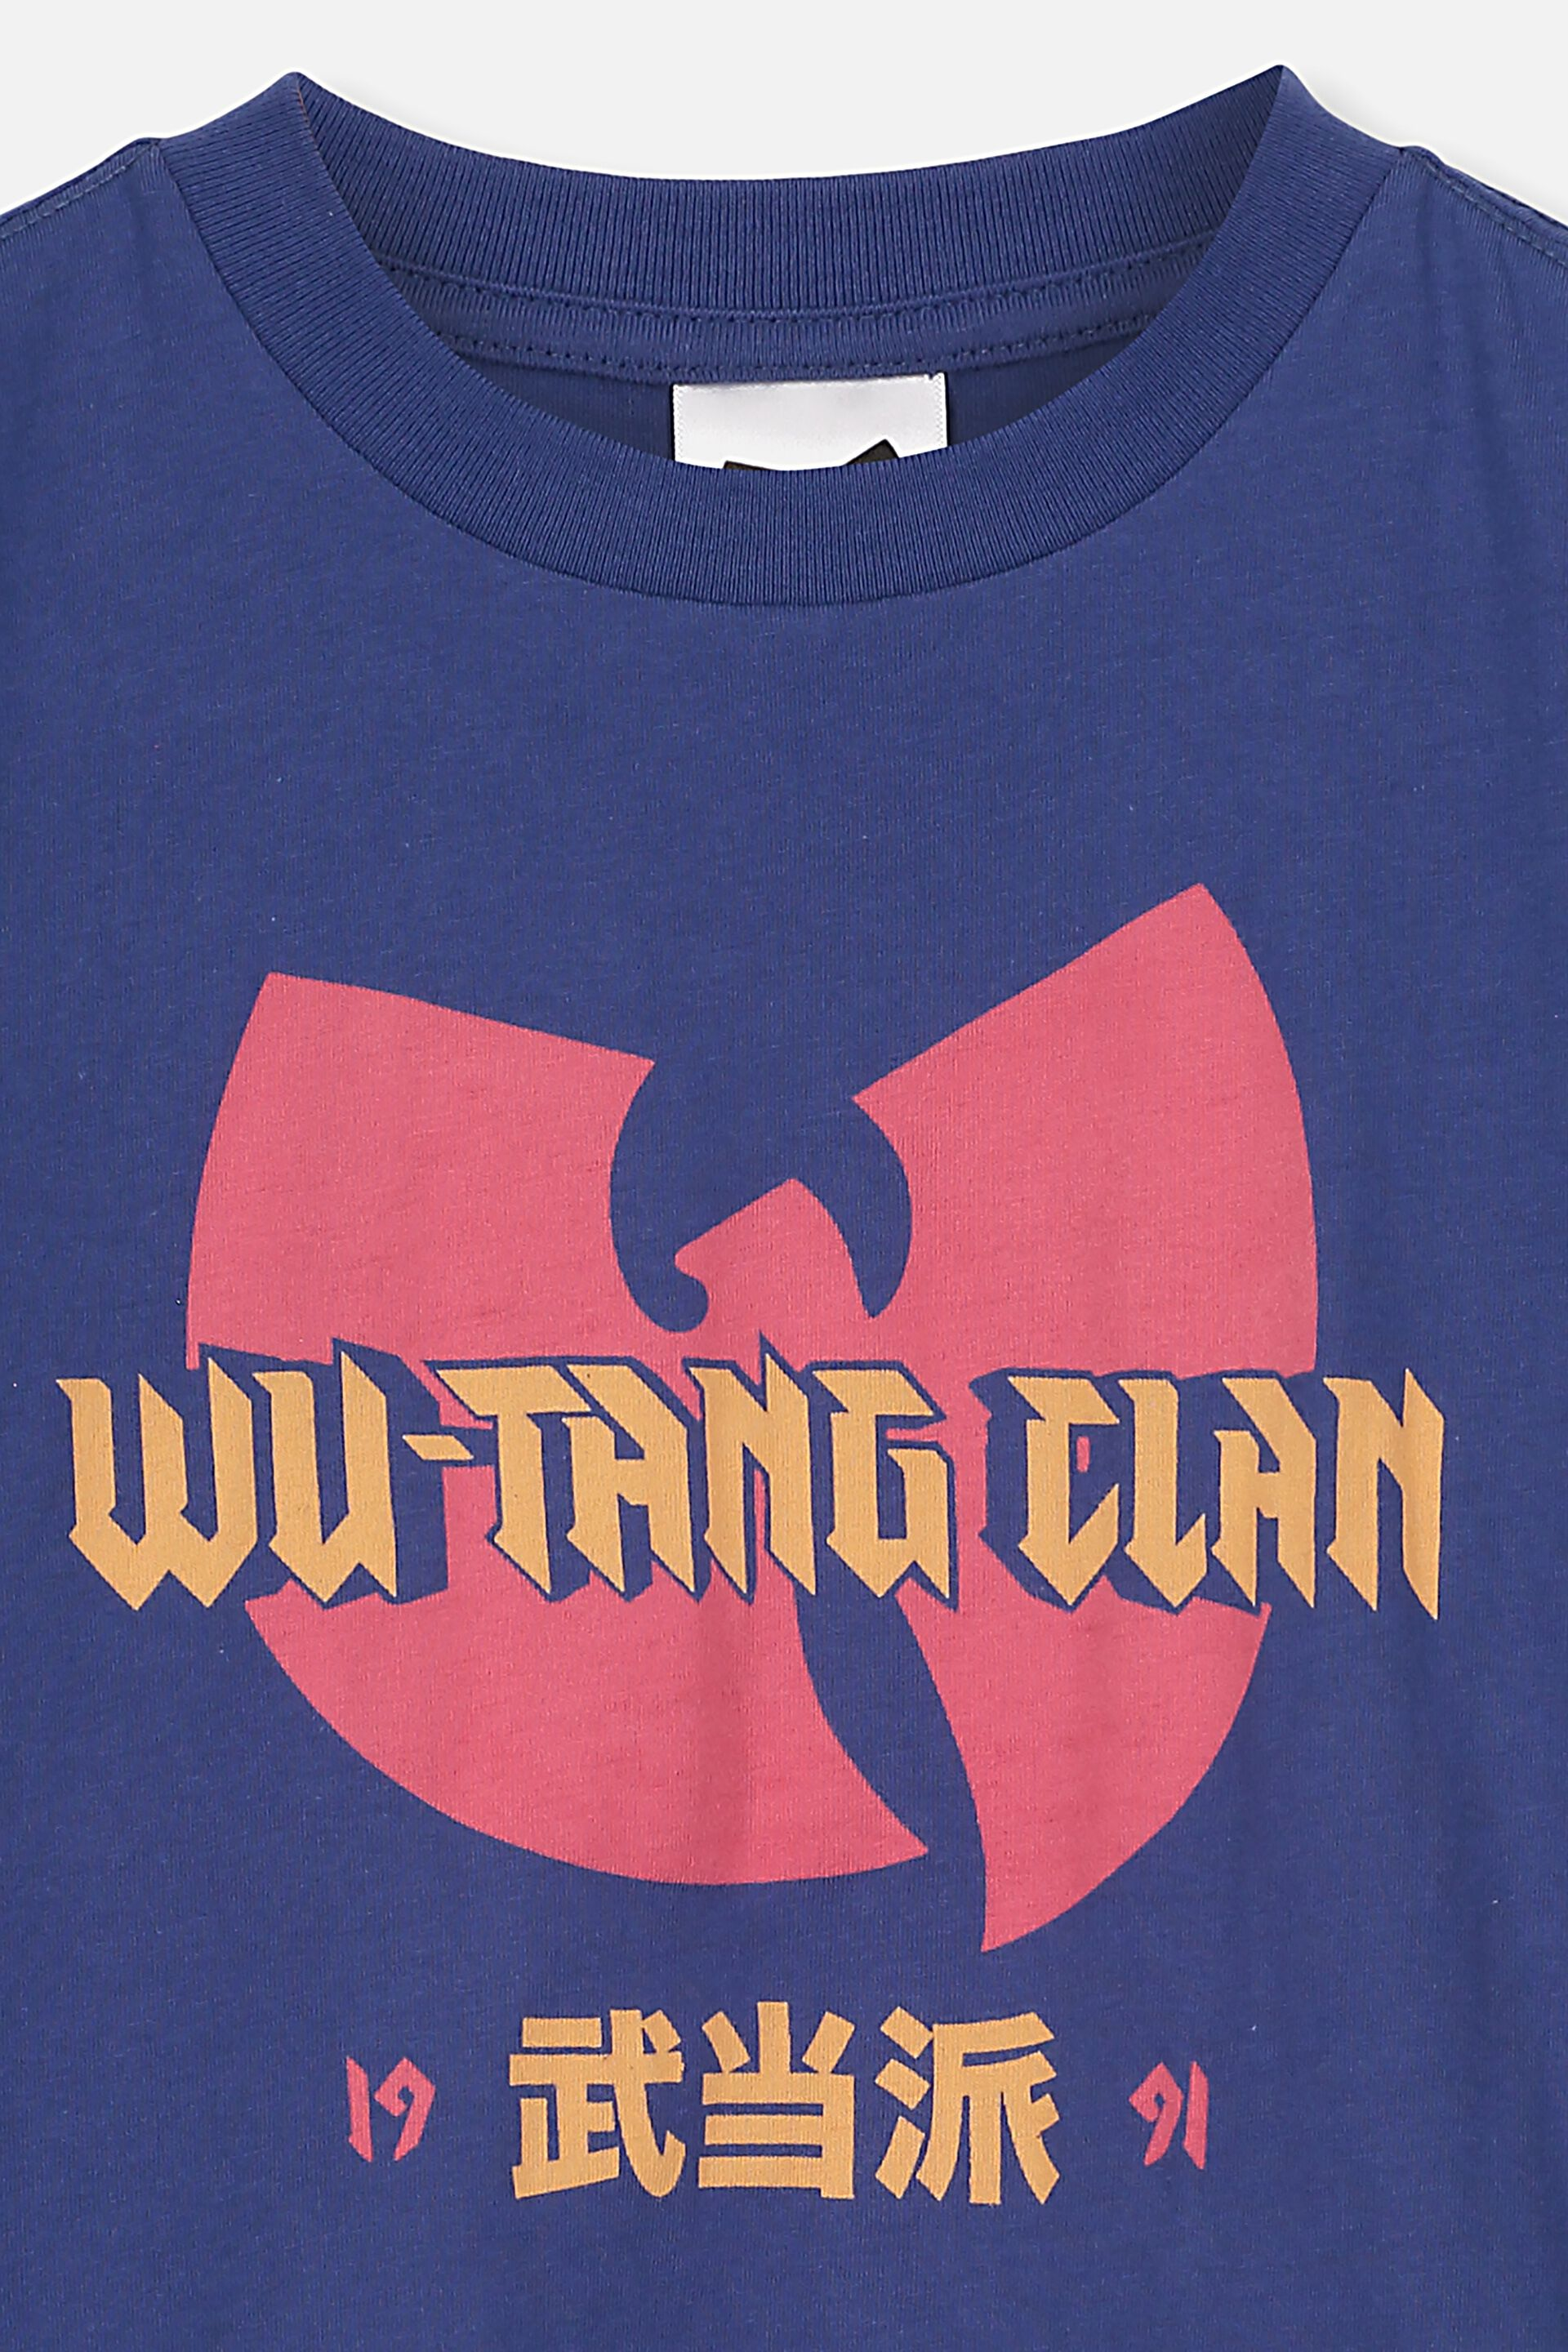 wu tang clan t-shirt model:blue clothing kid t shirt toddler children size:1-8y